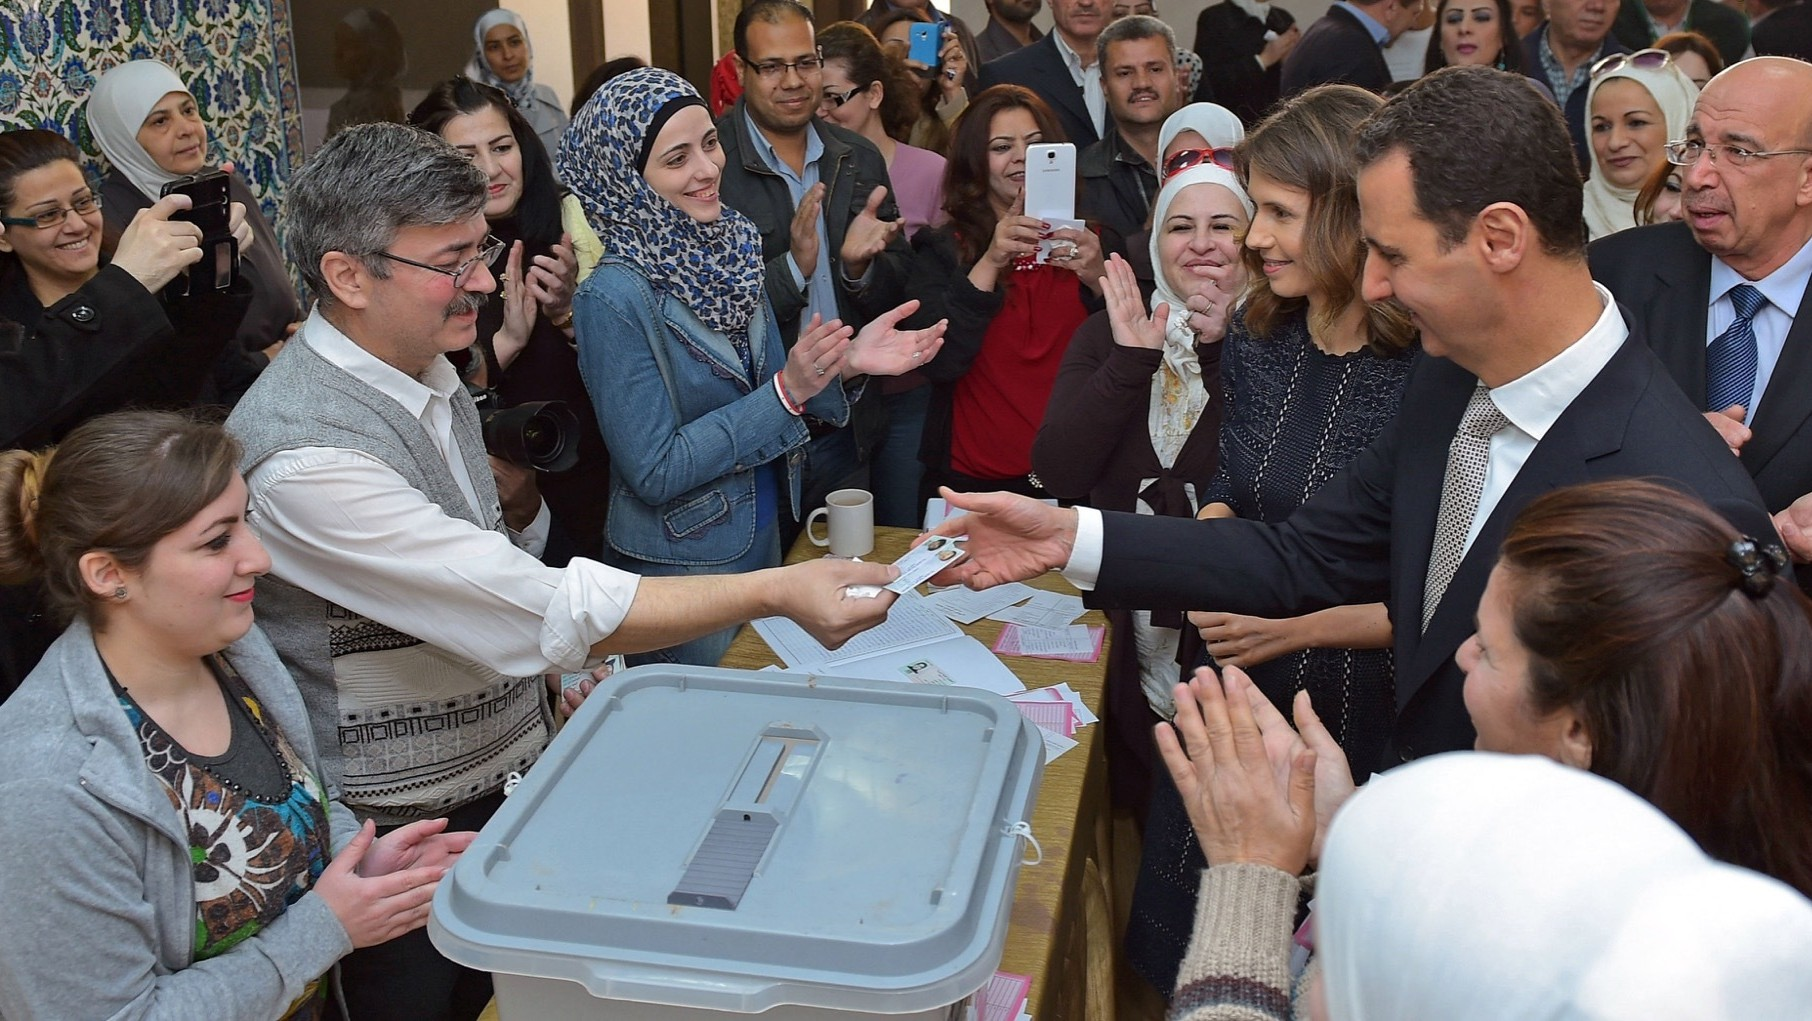 Syrians Vote in 'Sham' Election While UN-led Peace Talks Resume